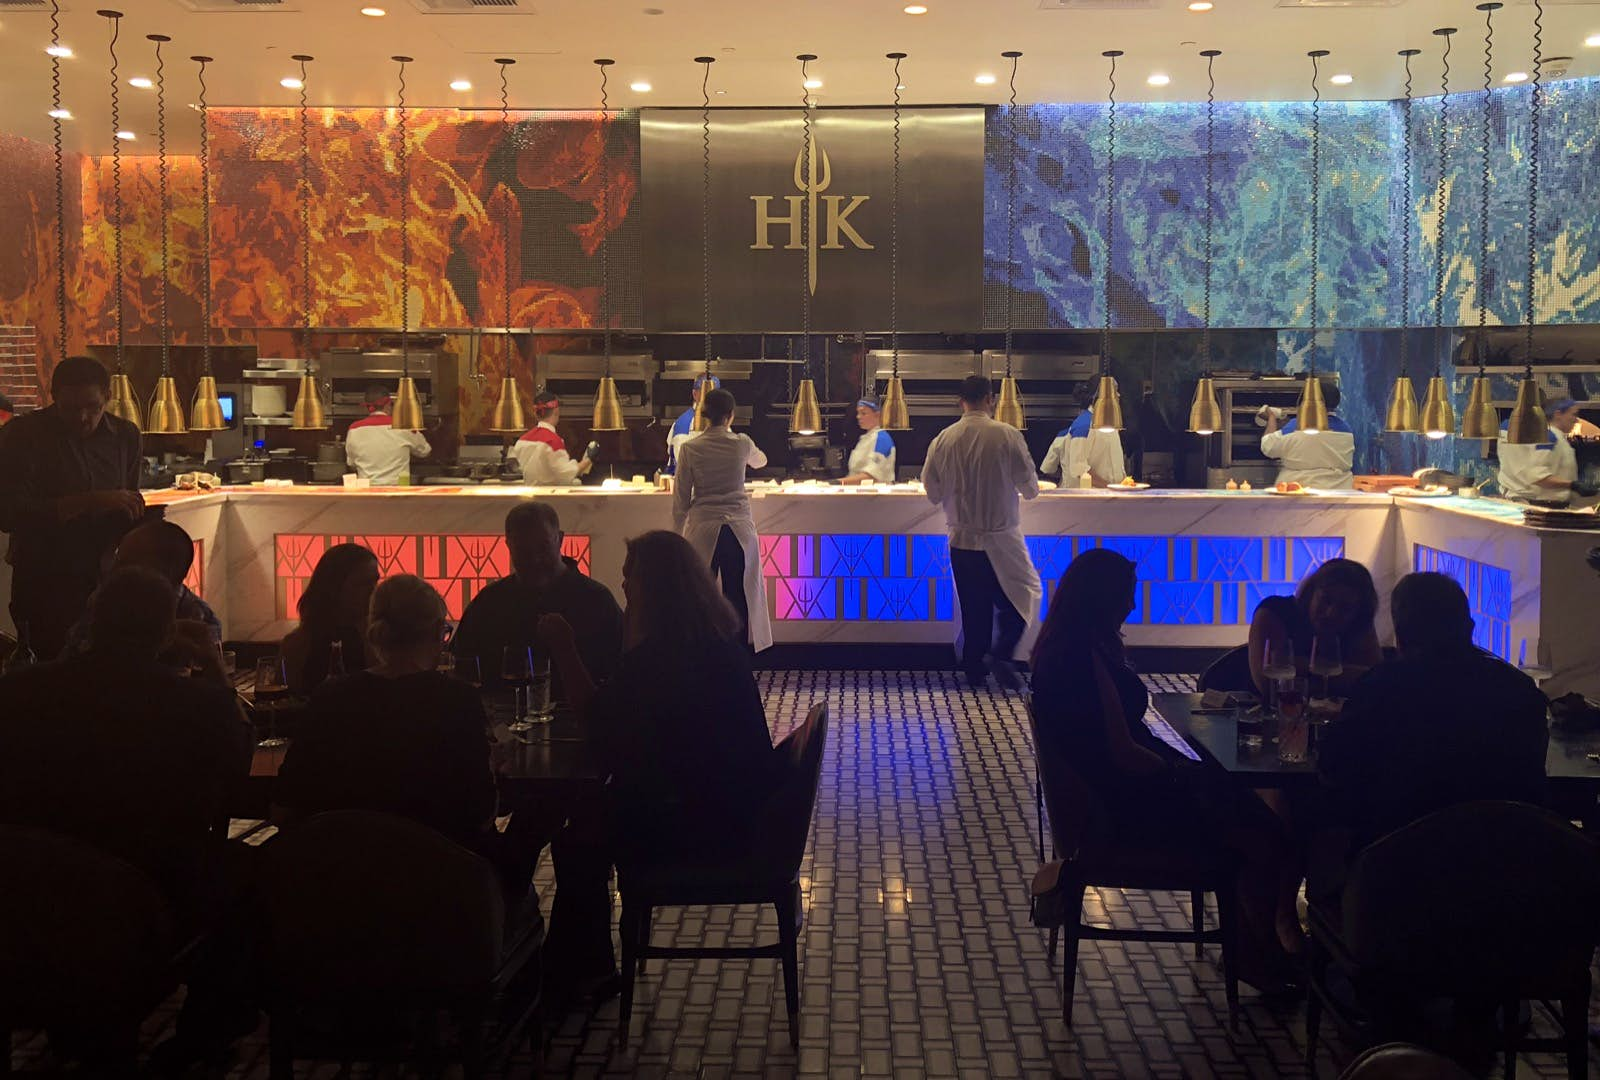 Red and blue flames mark a mural above a long kitchen as diners sit in the dark and waiters move back and forth at a celebrity chef restaurant in Las Vegas